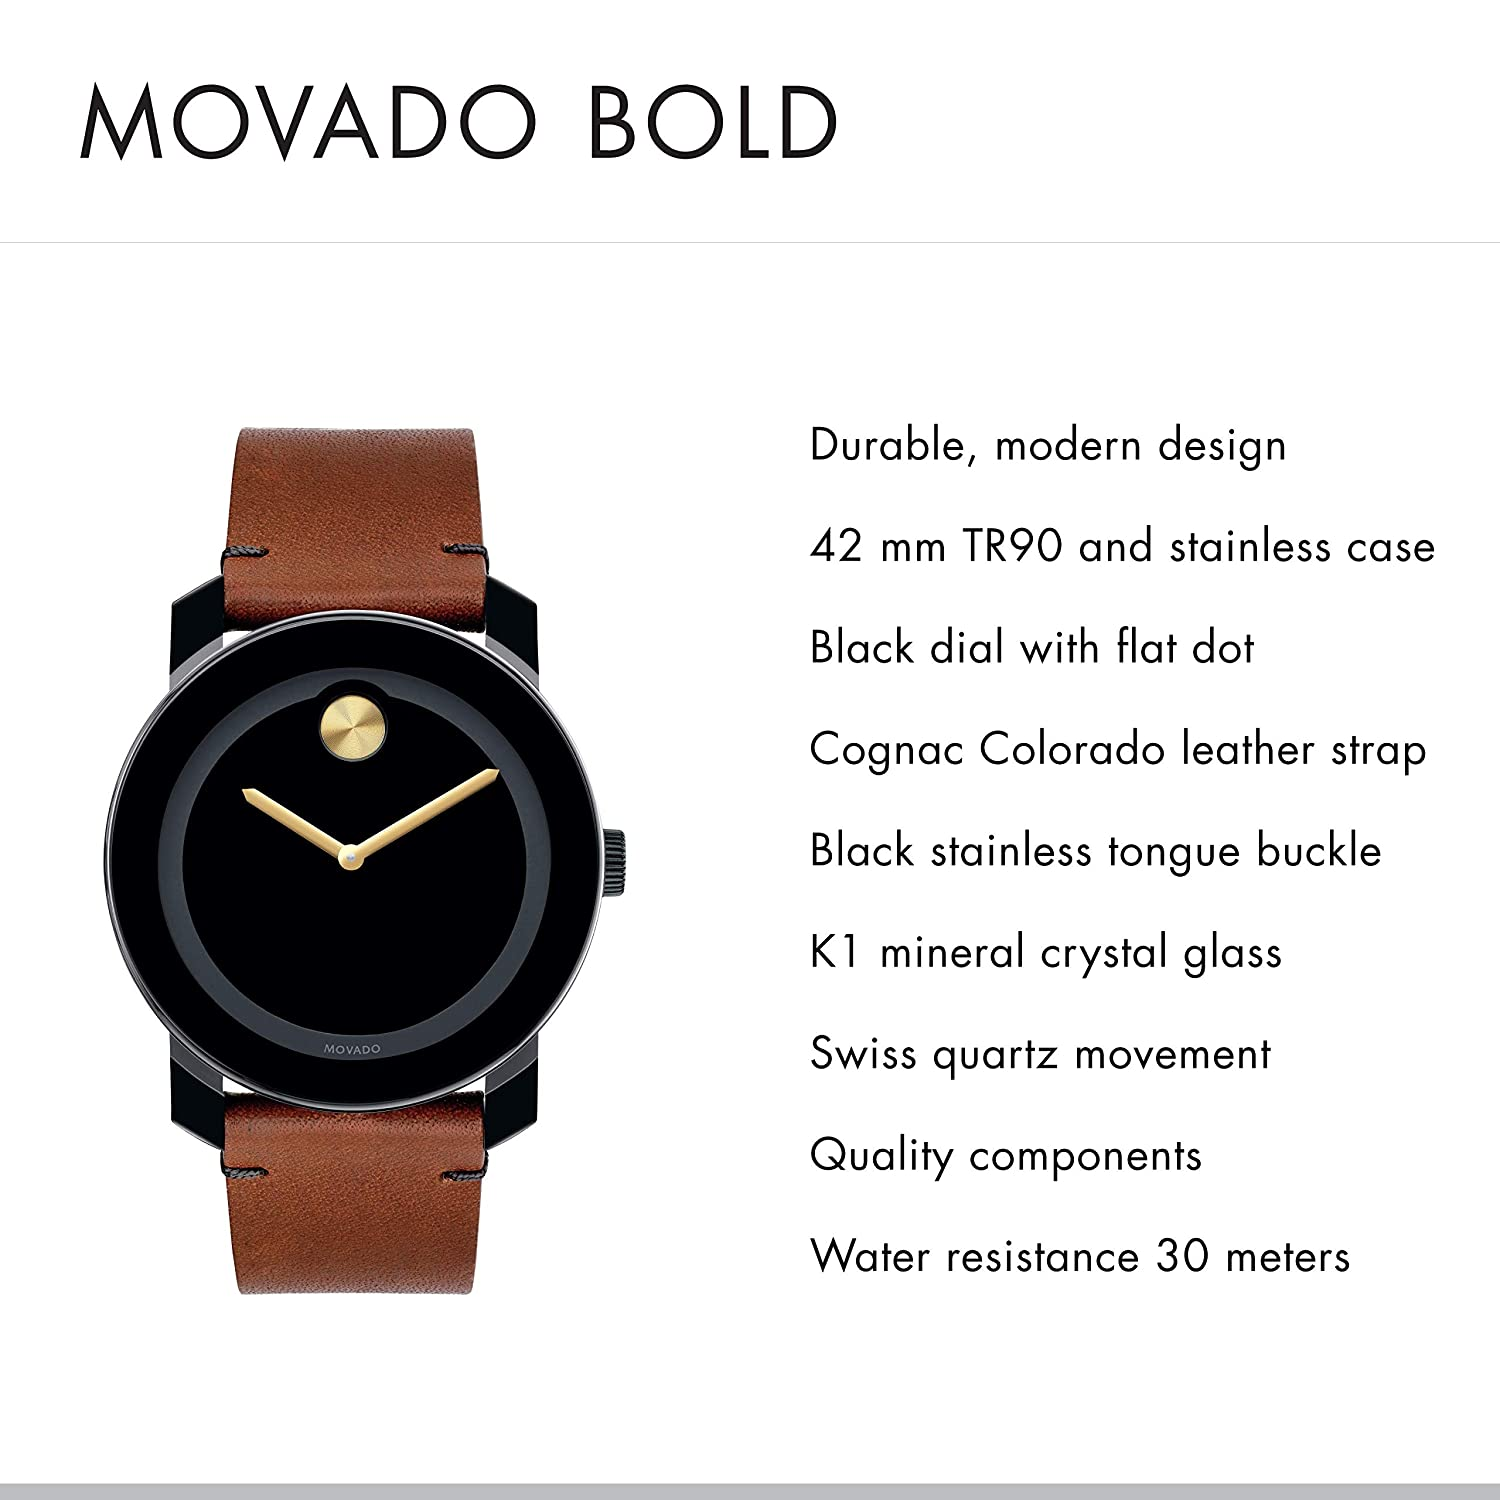 9f9b9d46e Amazon.com: Movado Men's BOLD TR90 Watch with a Sunray Dot and Leather  Strap, Black/Gold (Model 3600305): Watches